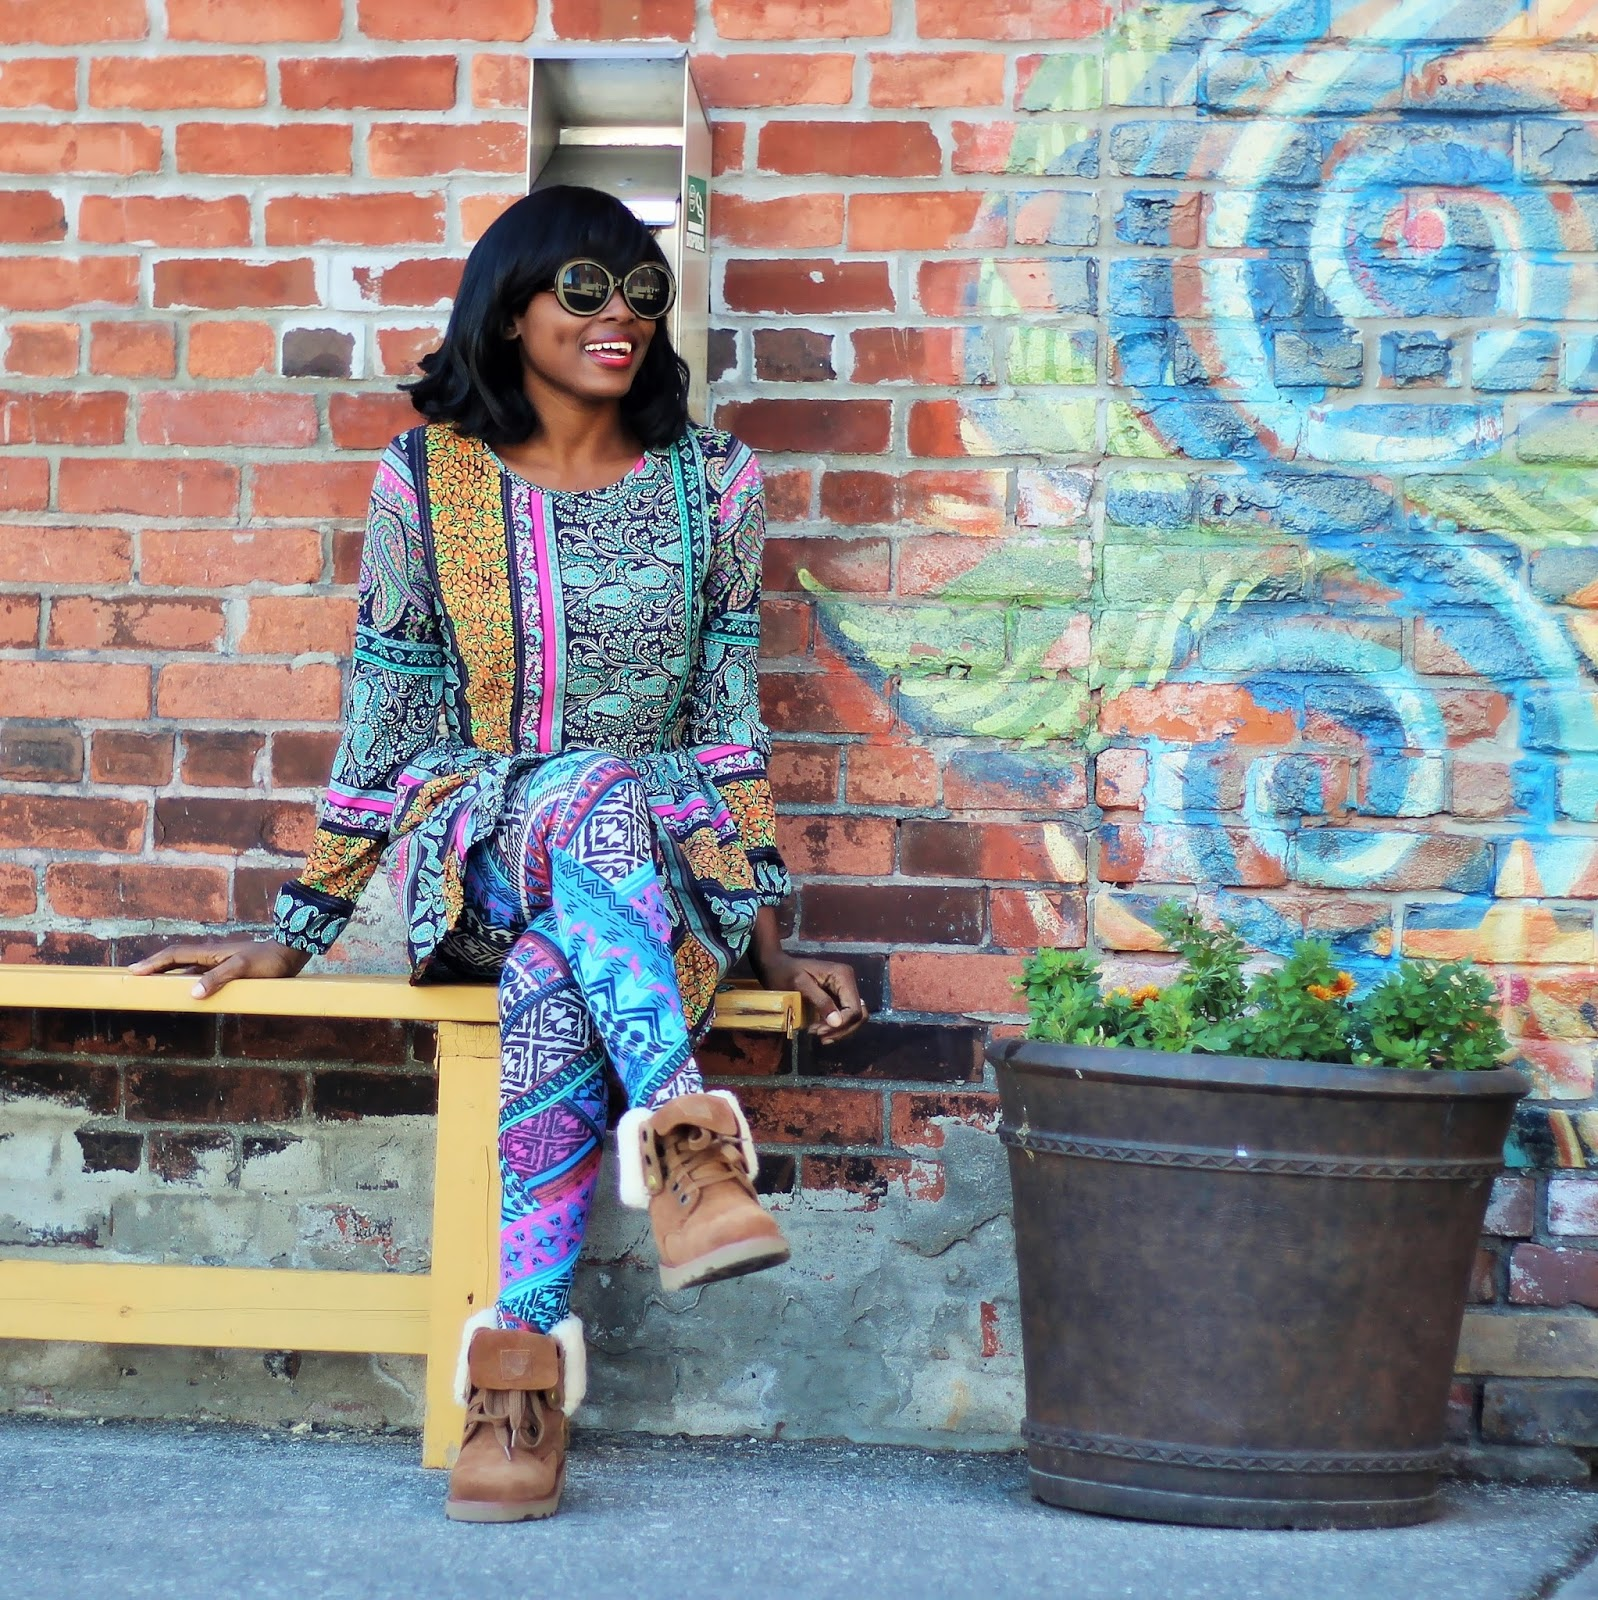 MY LAZY SUNDAY LOOK (Mixing Prints): Printed dress paired with printed leggings and a pair of fall/winter boots